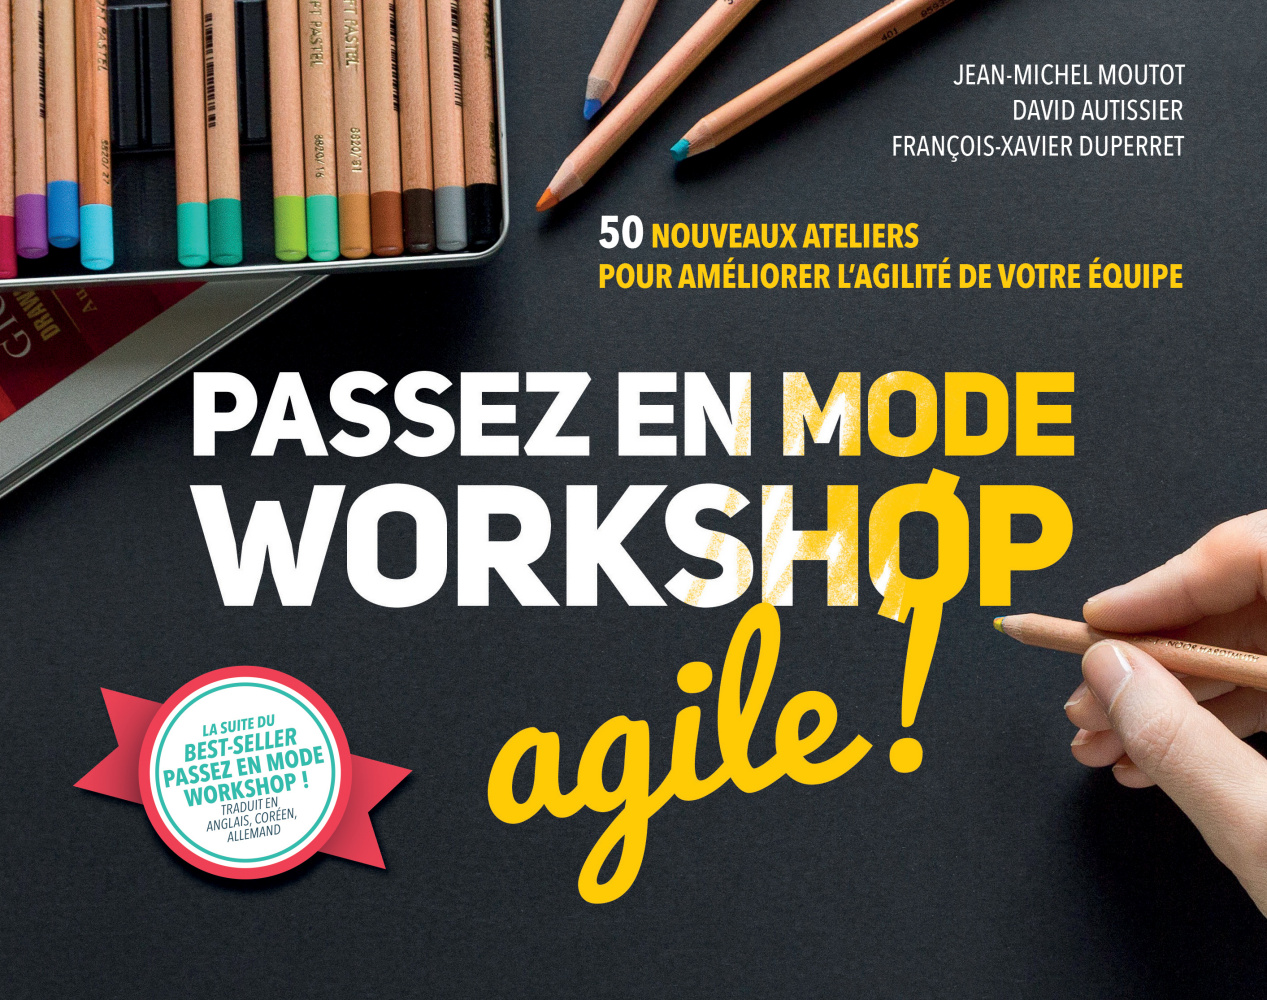 Passez en mode workshop agile !